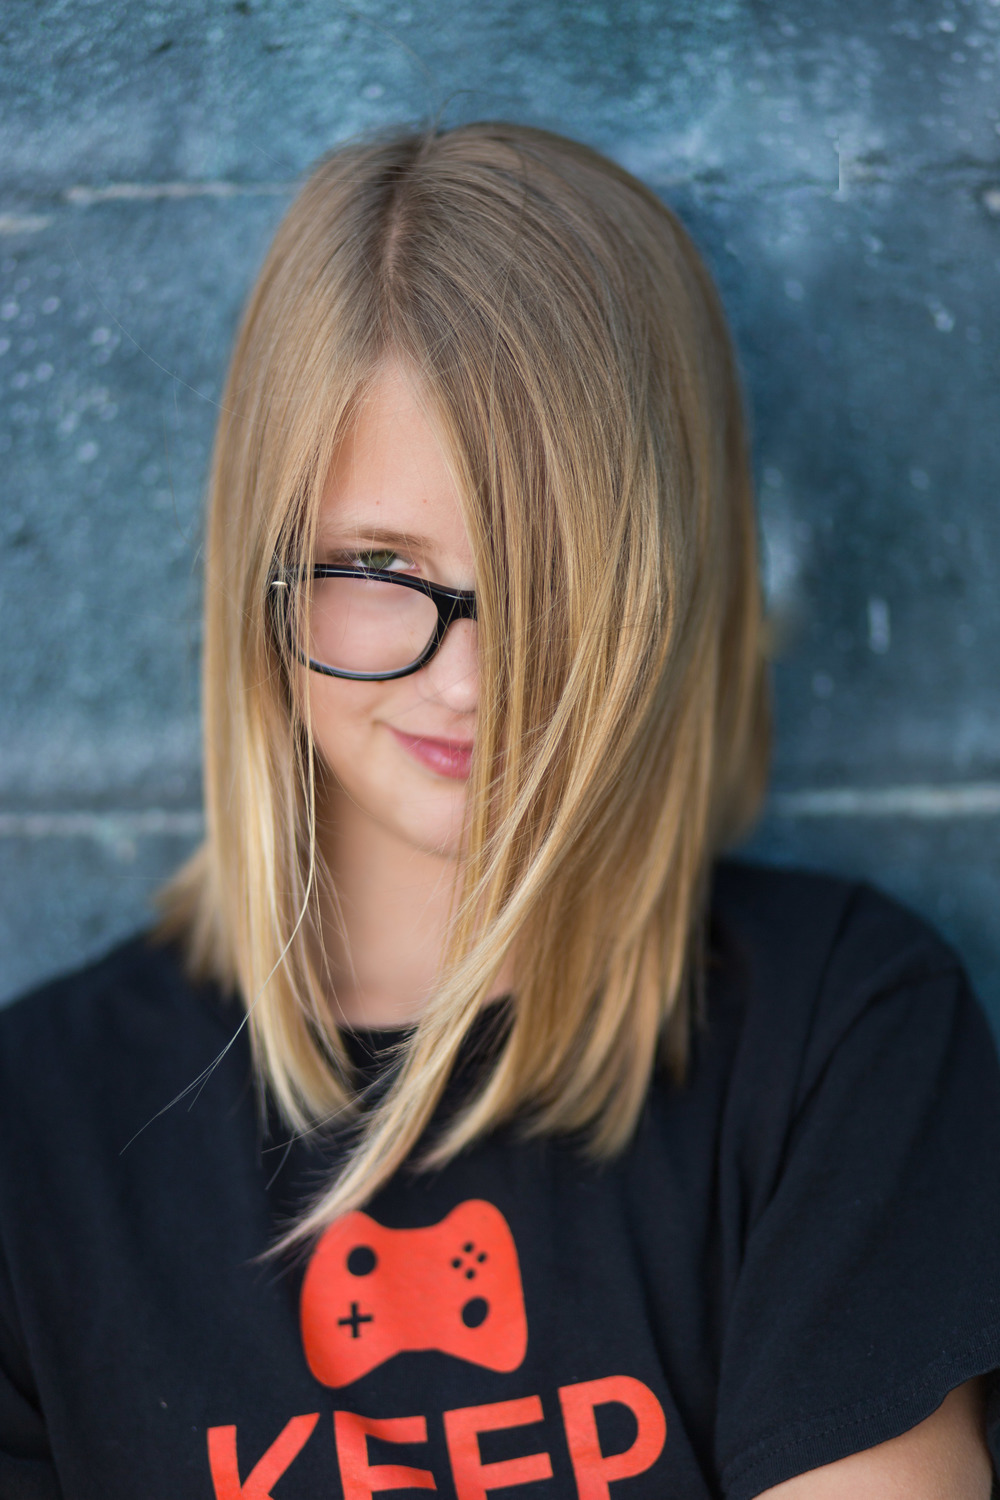 tween portrait of a girl wearing glasses